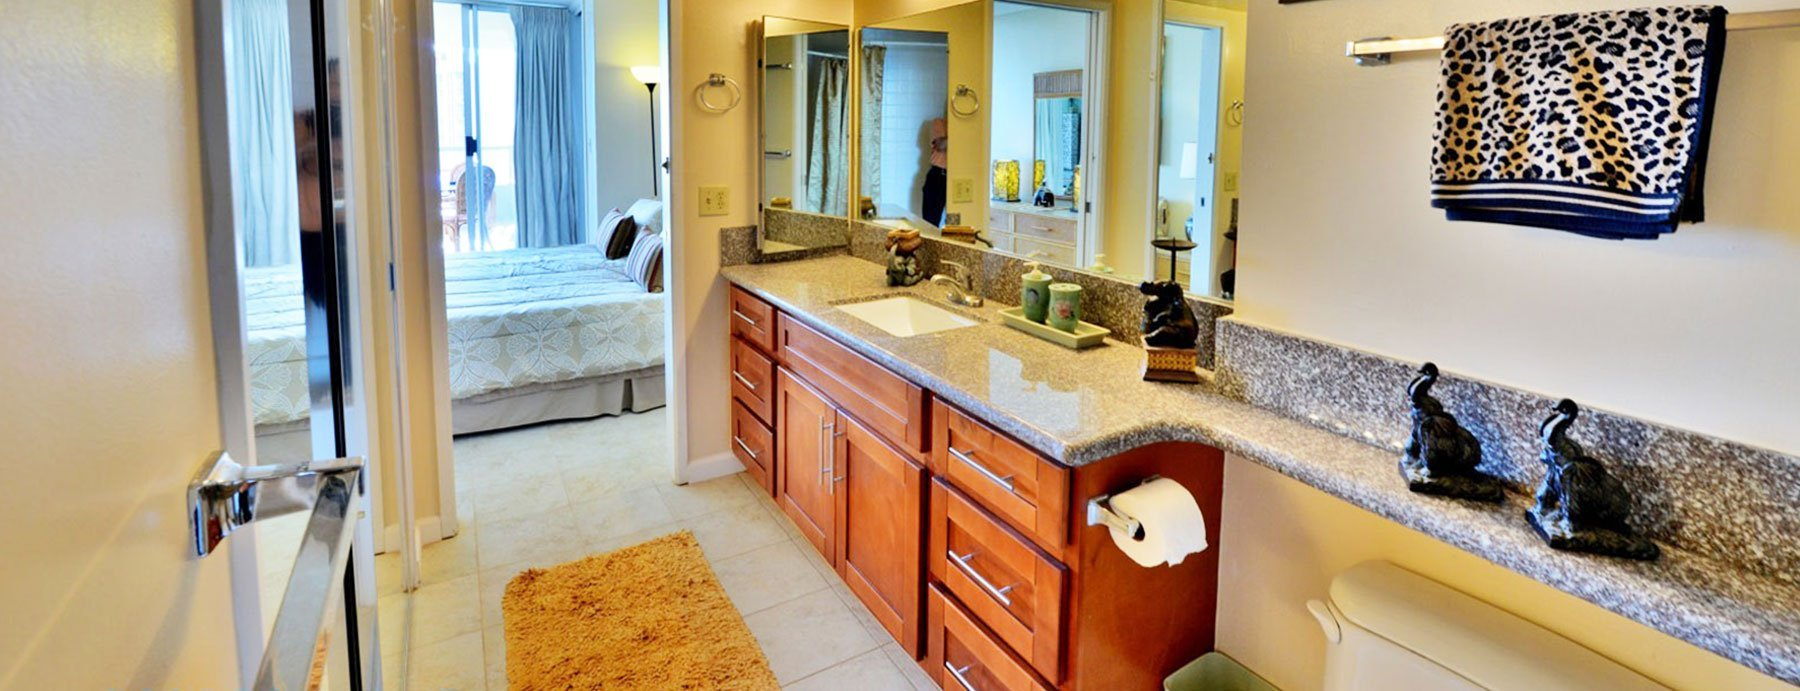 100 kitchen cabinets honolulu how much do kitchen for Kitchen cabinets hawaii